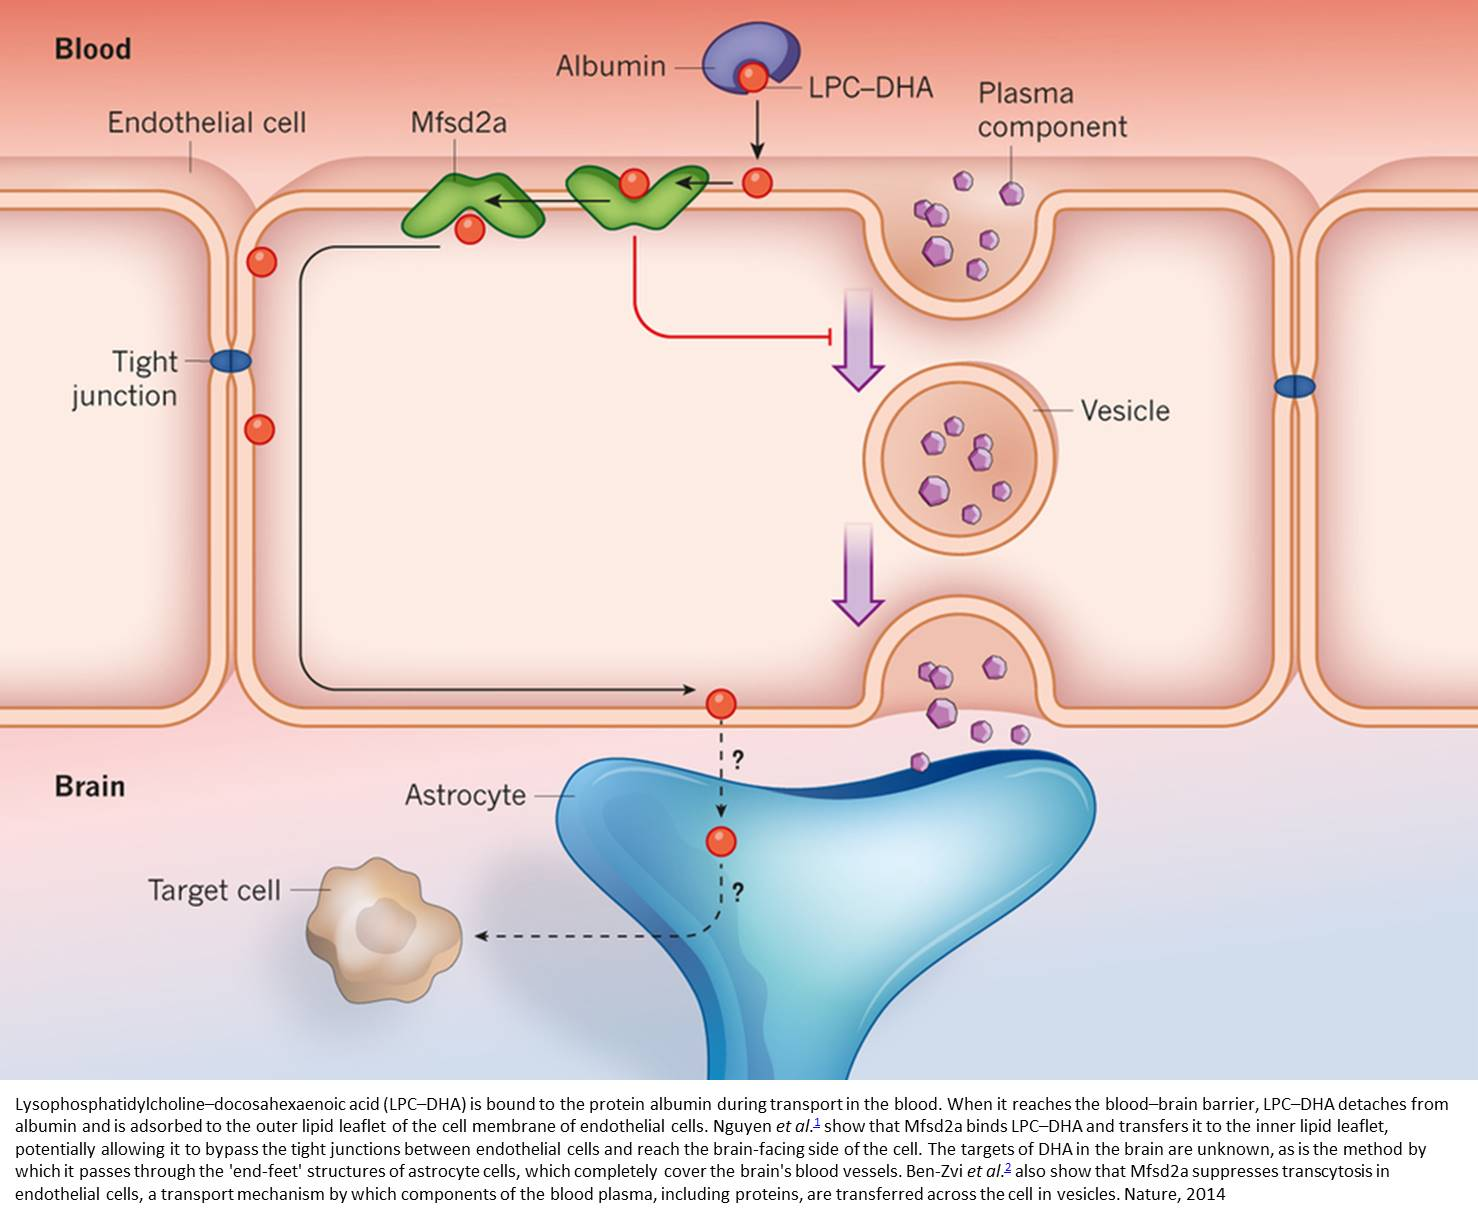 Role of omega-3 fatty acids in keeping the blood-brain barrier closed